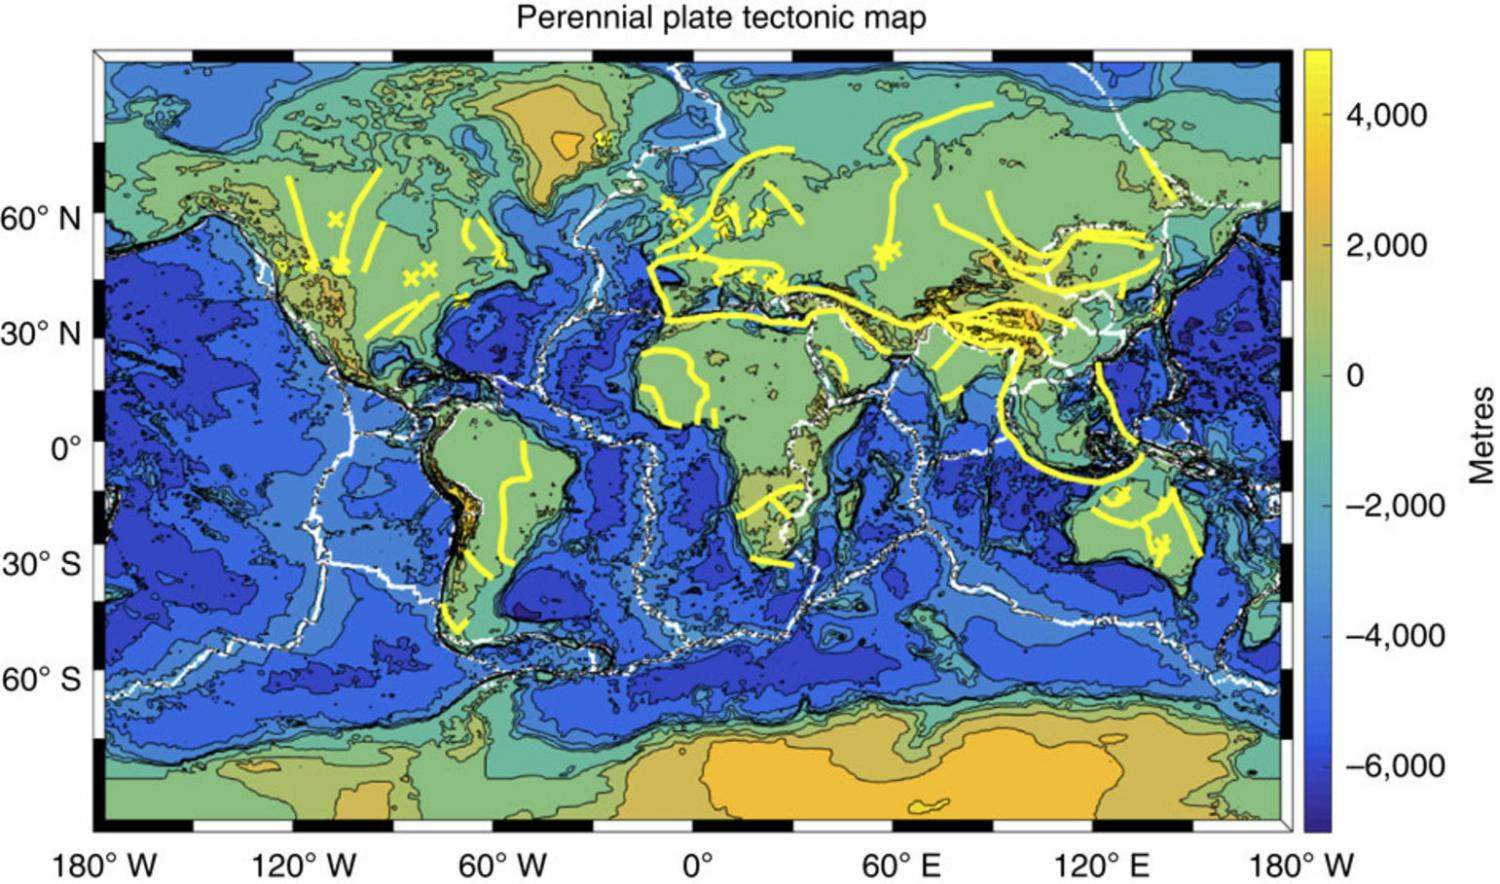 tectonics new findings fill out the year old theory that plate tectonics new findings fill out the 50 year old theory that explains earth s landmasses